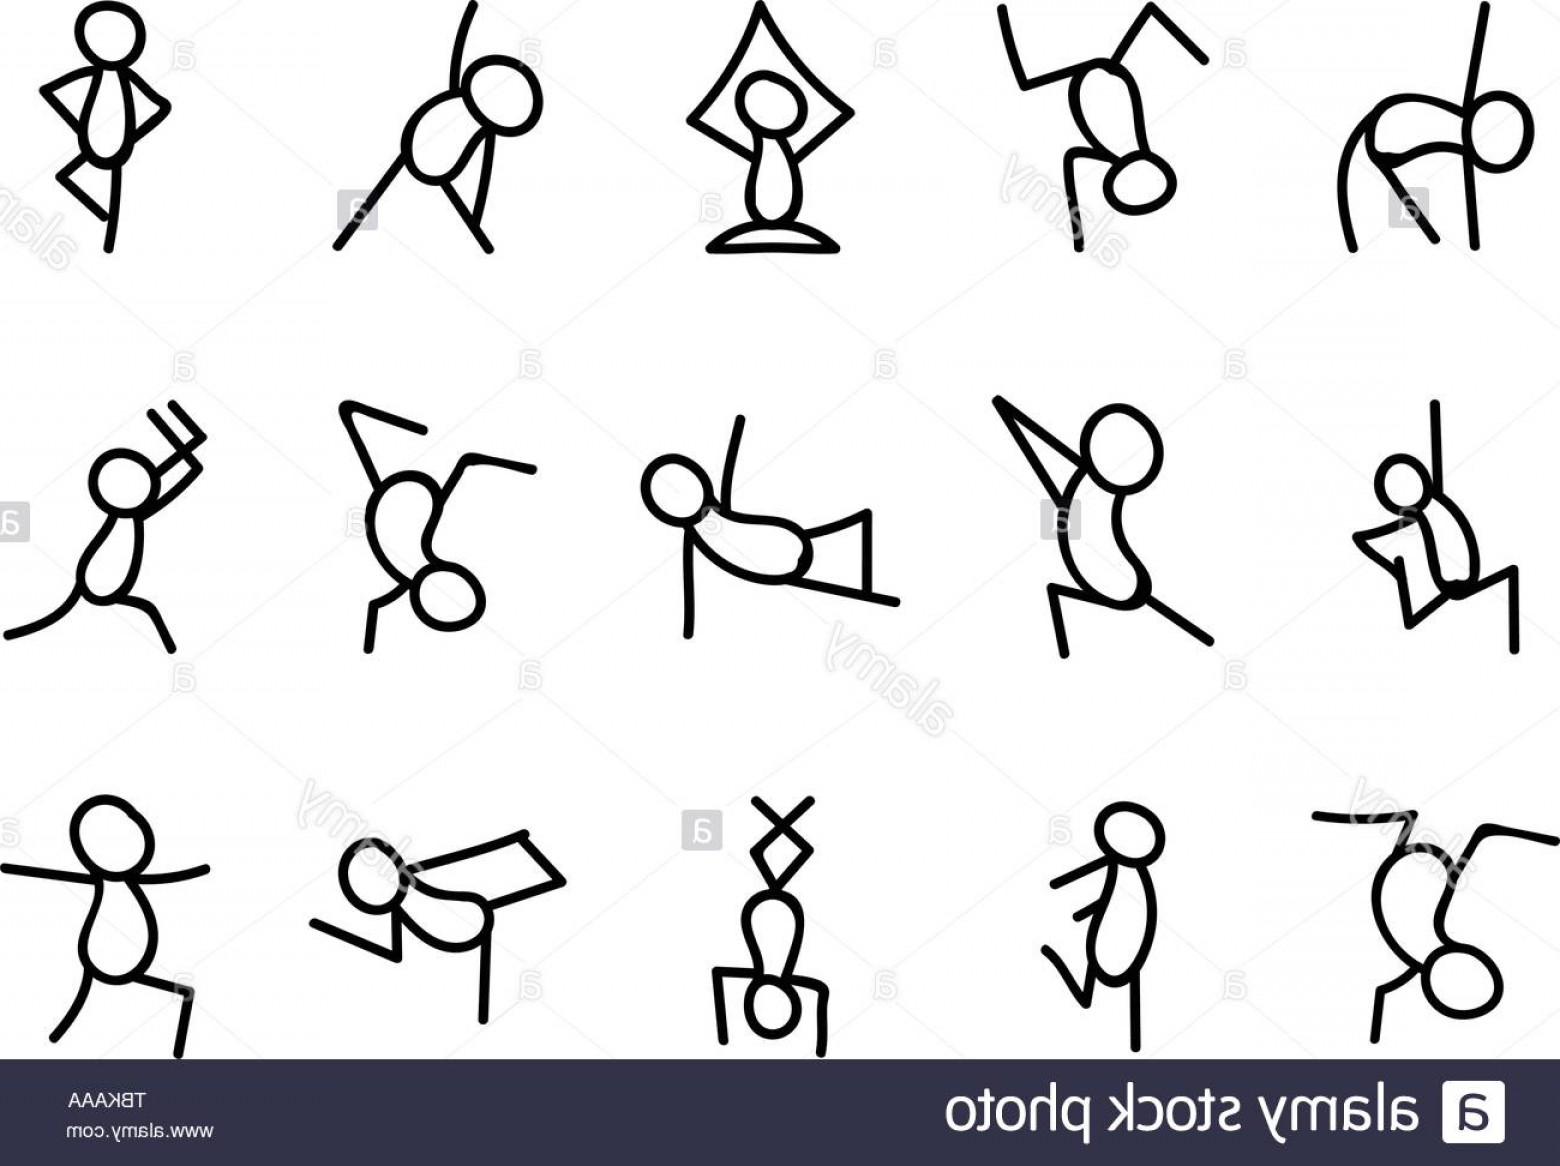 Vector Stick Figure Yoga Positions: Stick Figures In Yoga Set Simple Stylized Yoga Poses Icon Image